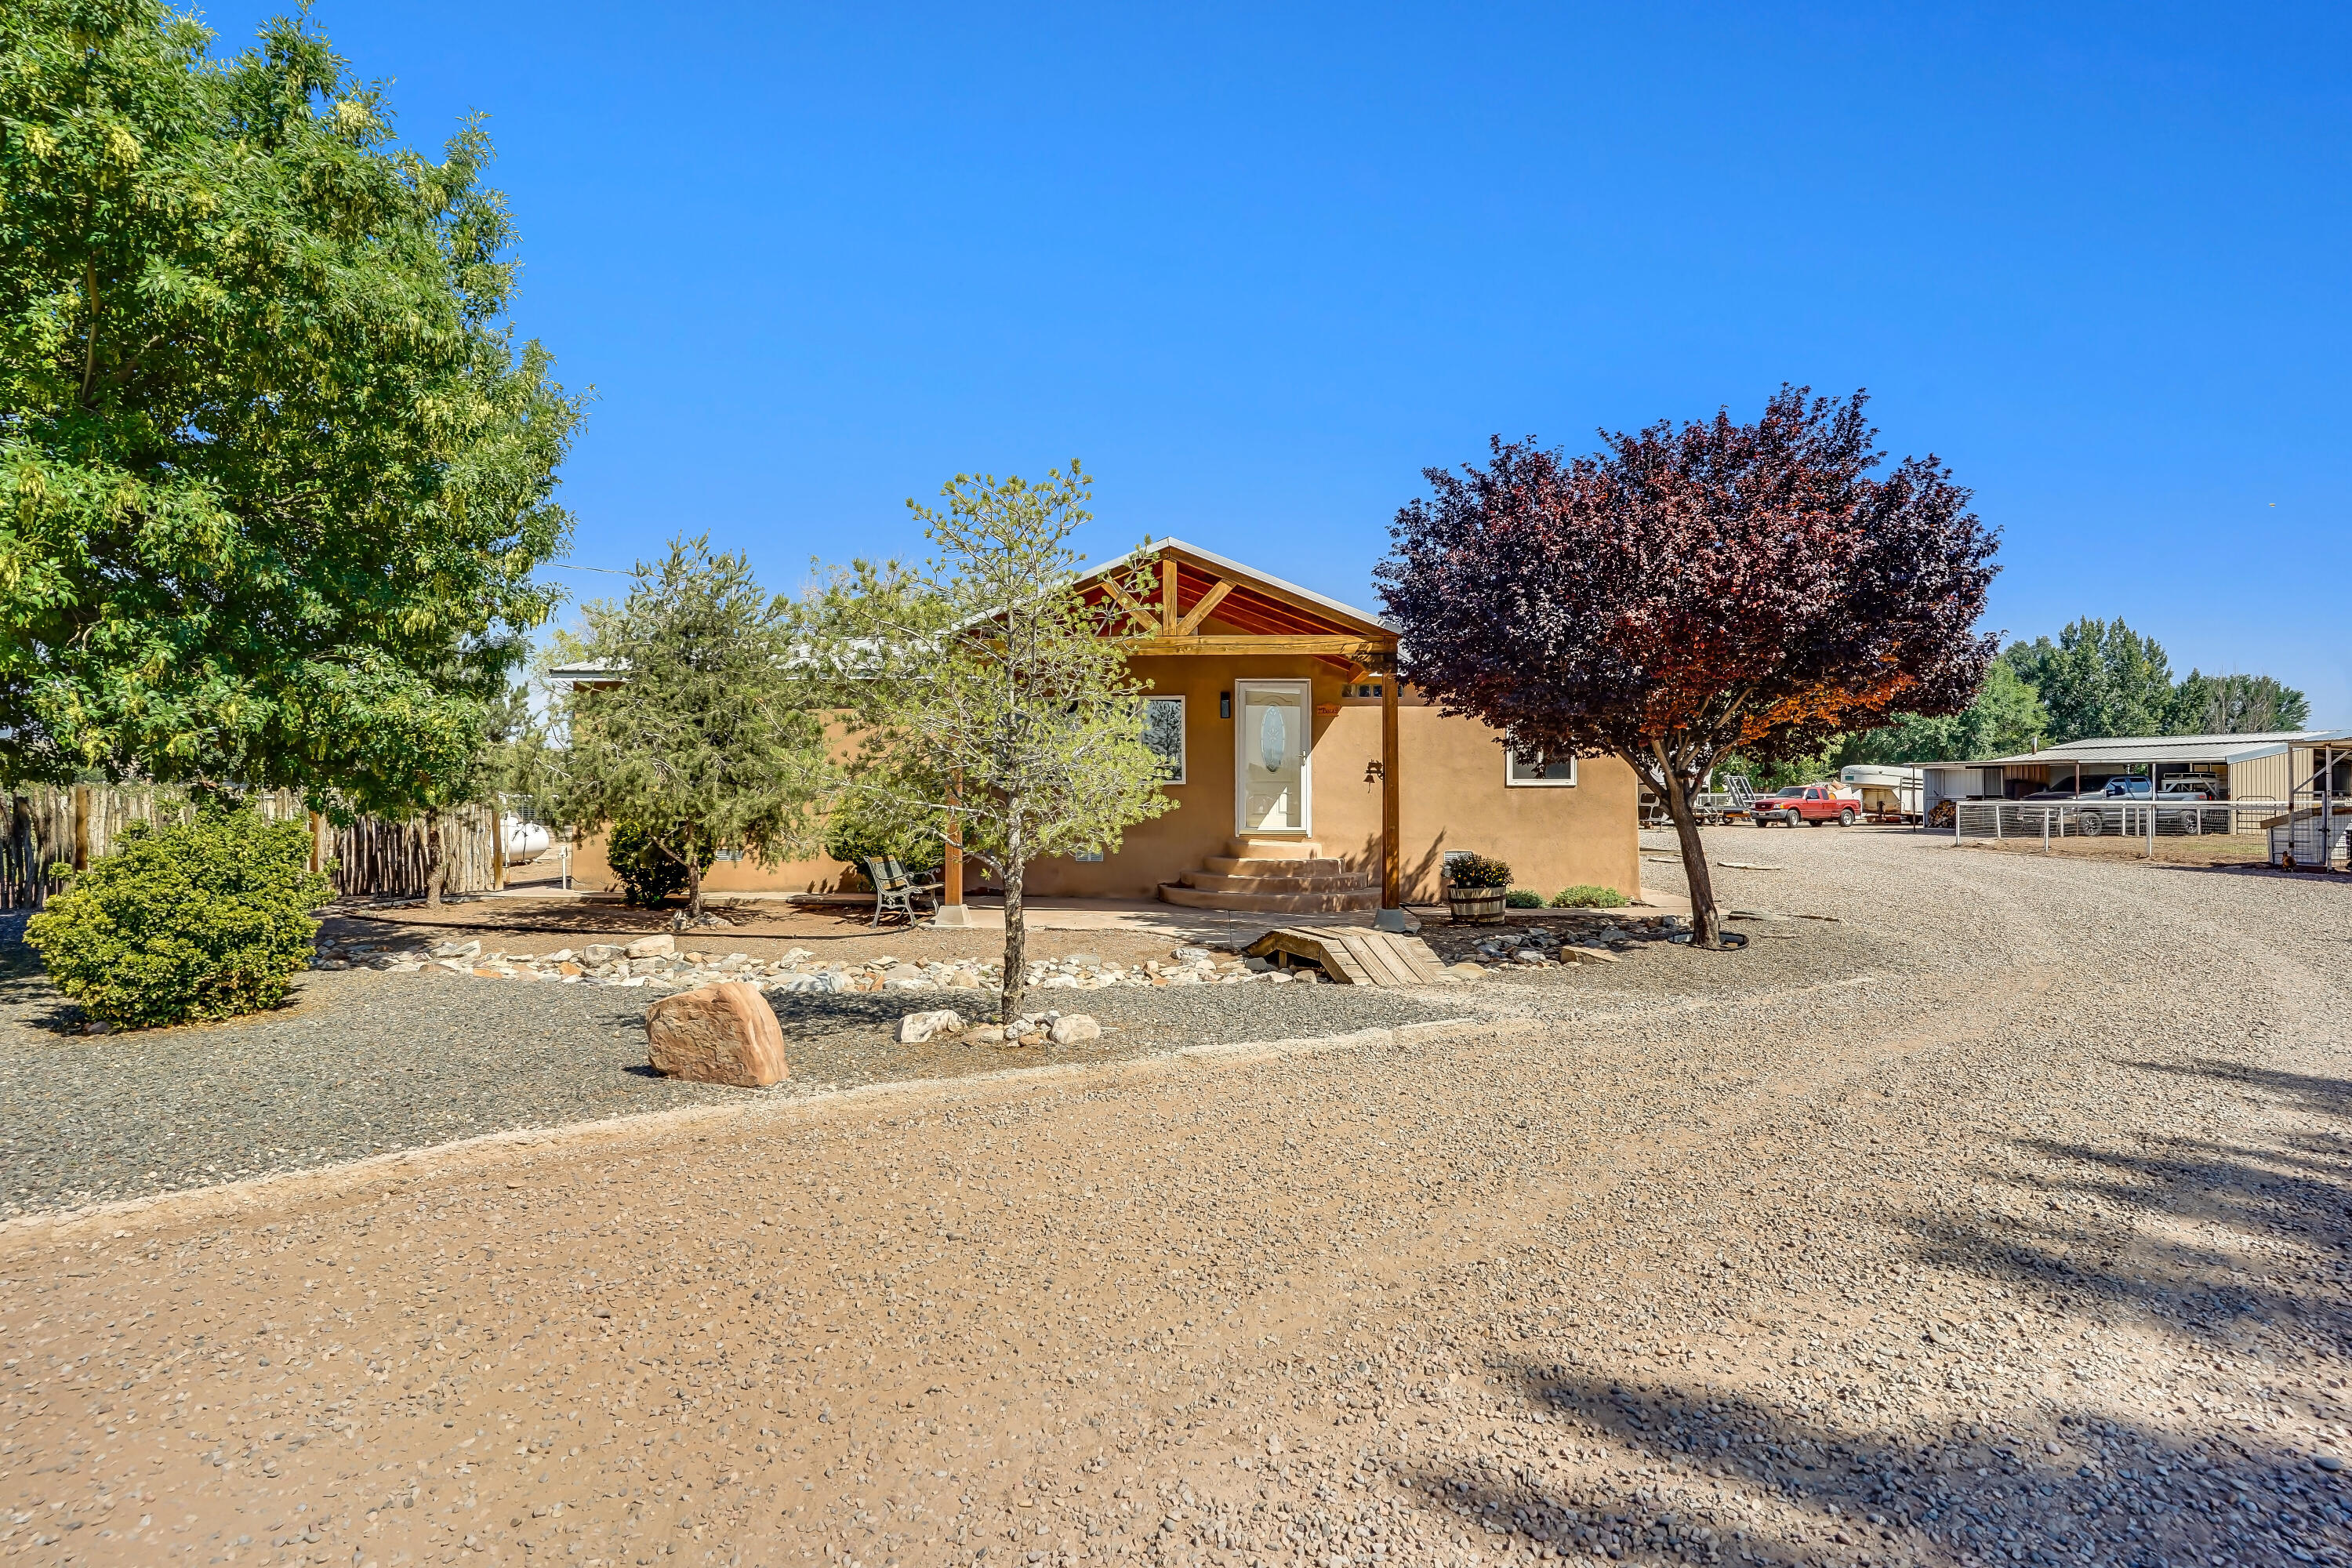 Wow!Country Living at its Best...Beautiful Views Of Tome Hill & The Monzano Mtns Country.This MiniRanch is equipped w/2 Properties,Barn,Irrigation Rights,New 198 ft Private Water Well Drilled 2020,Large Pasture,Extended 2 Car Garage,2 Storage Sheds,250-gal Propane Tank & 2 Entryways.The 1.5 Acres is perfect for Agricultural Farming,Raising Livestock,Subdividing...the Possibilities are Endless.Pick between 2 Beautiful Homes on the Pipe Fenced Property.Main House is 3BDRMS,2Bath 1,424 sq ft & Guest House is 1BDR,1Bath 642 sq ft w/ all the live-in amenities.Perfect for Parents,older kids,or Air-BNB.New updates include New windows,New flooring,Remodeled Kitchen/Bathroom,Huge Country Kitchen w/ Breakfast Bar,Metal Roof on both properties.Country living Close To The Big City Amenities!